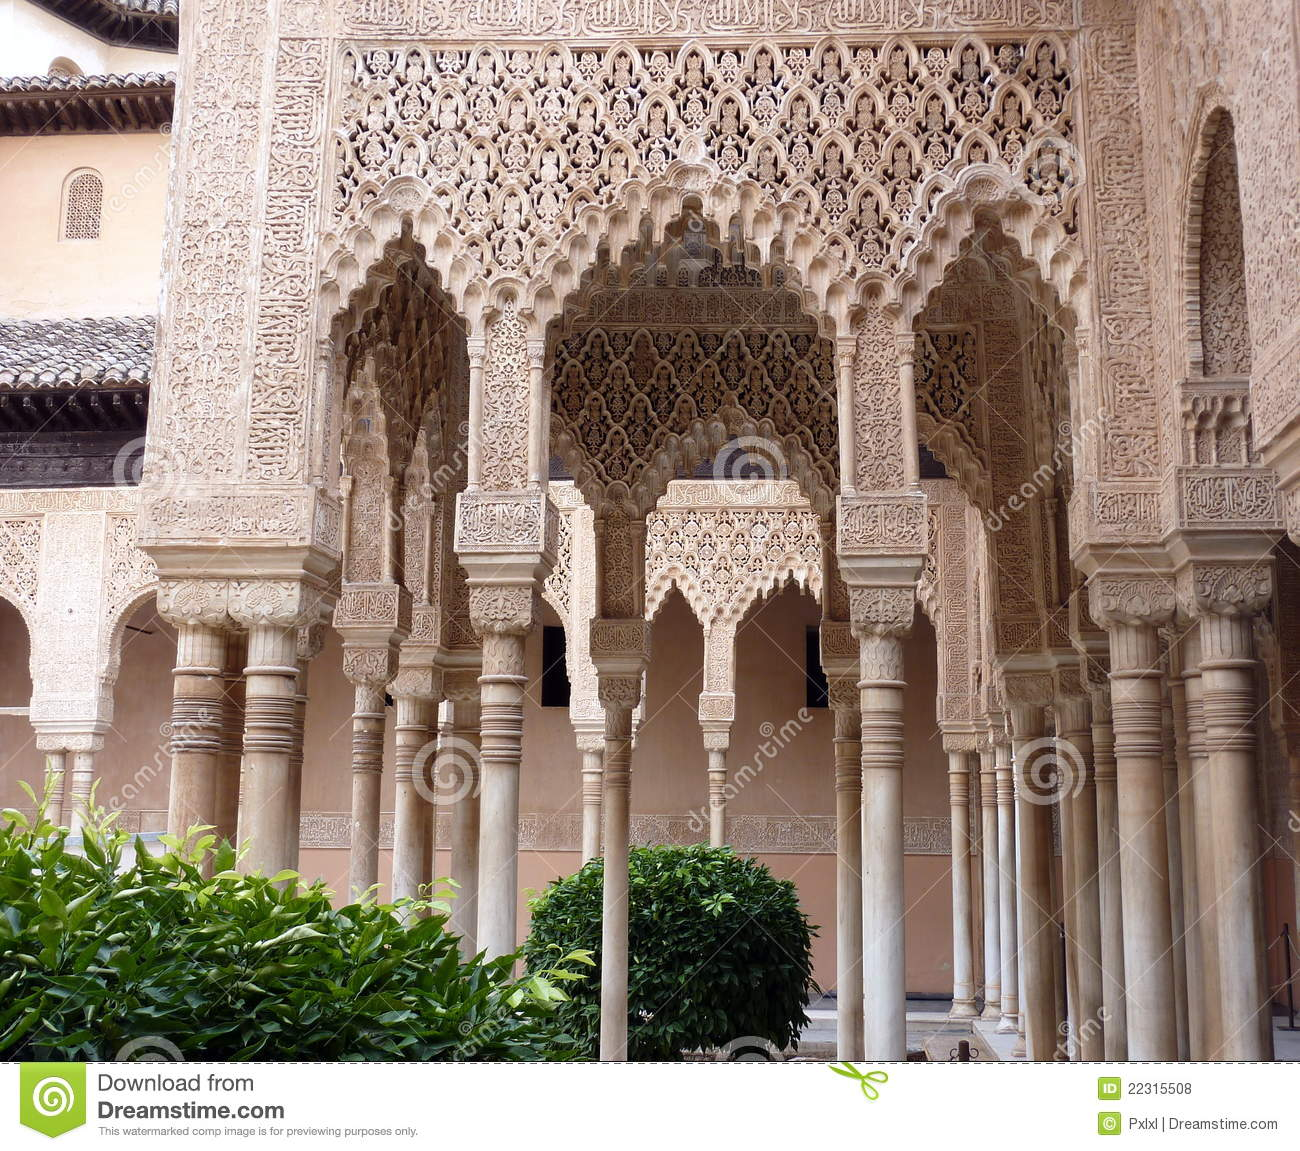 Decorated Arches And Columns In The Alhambra Royalty Free